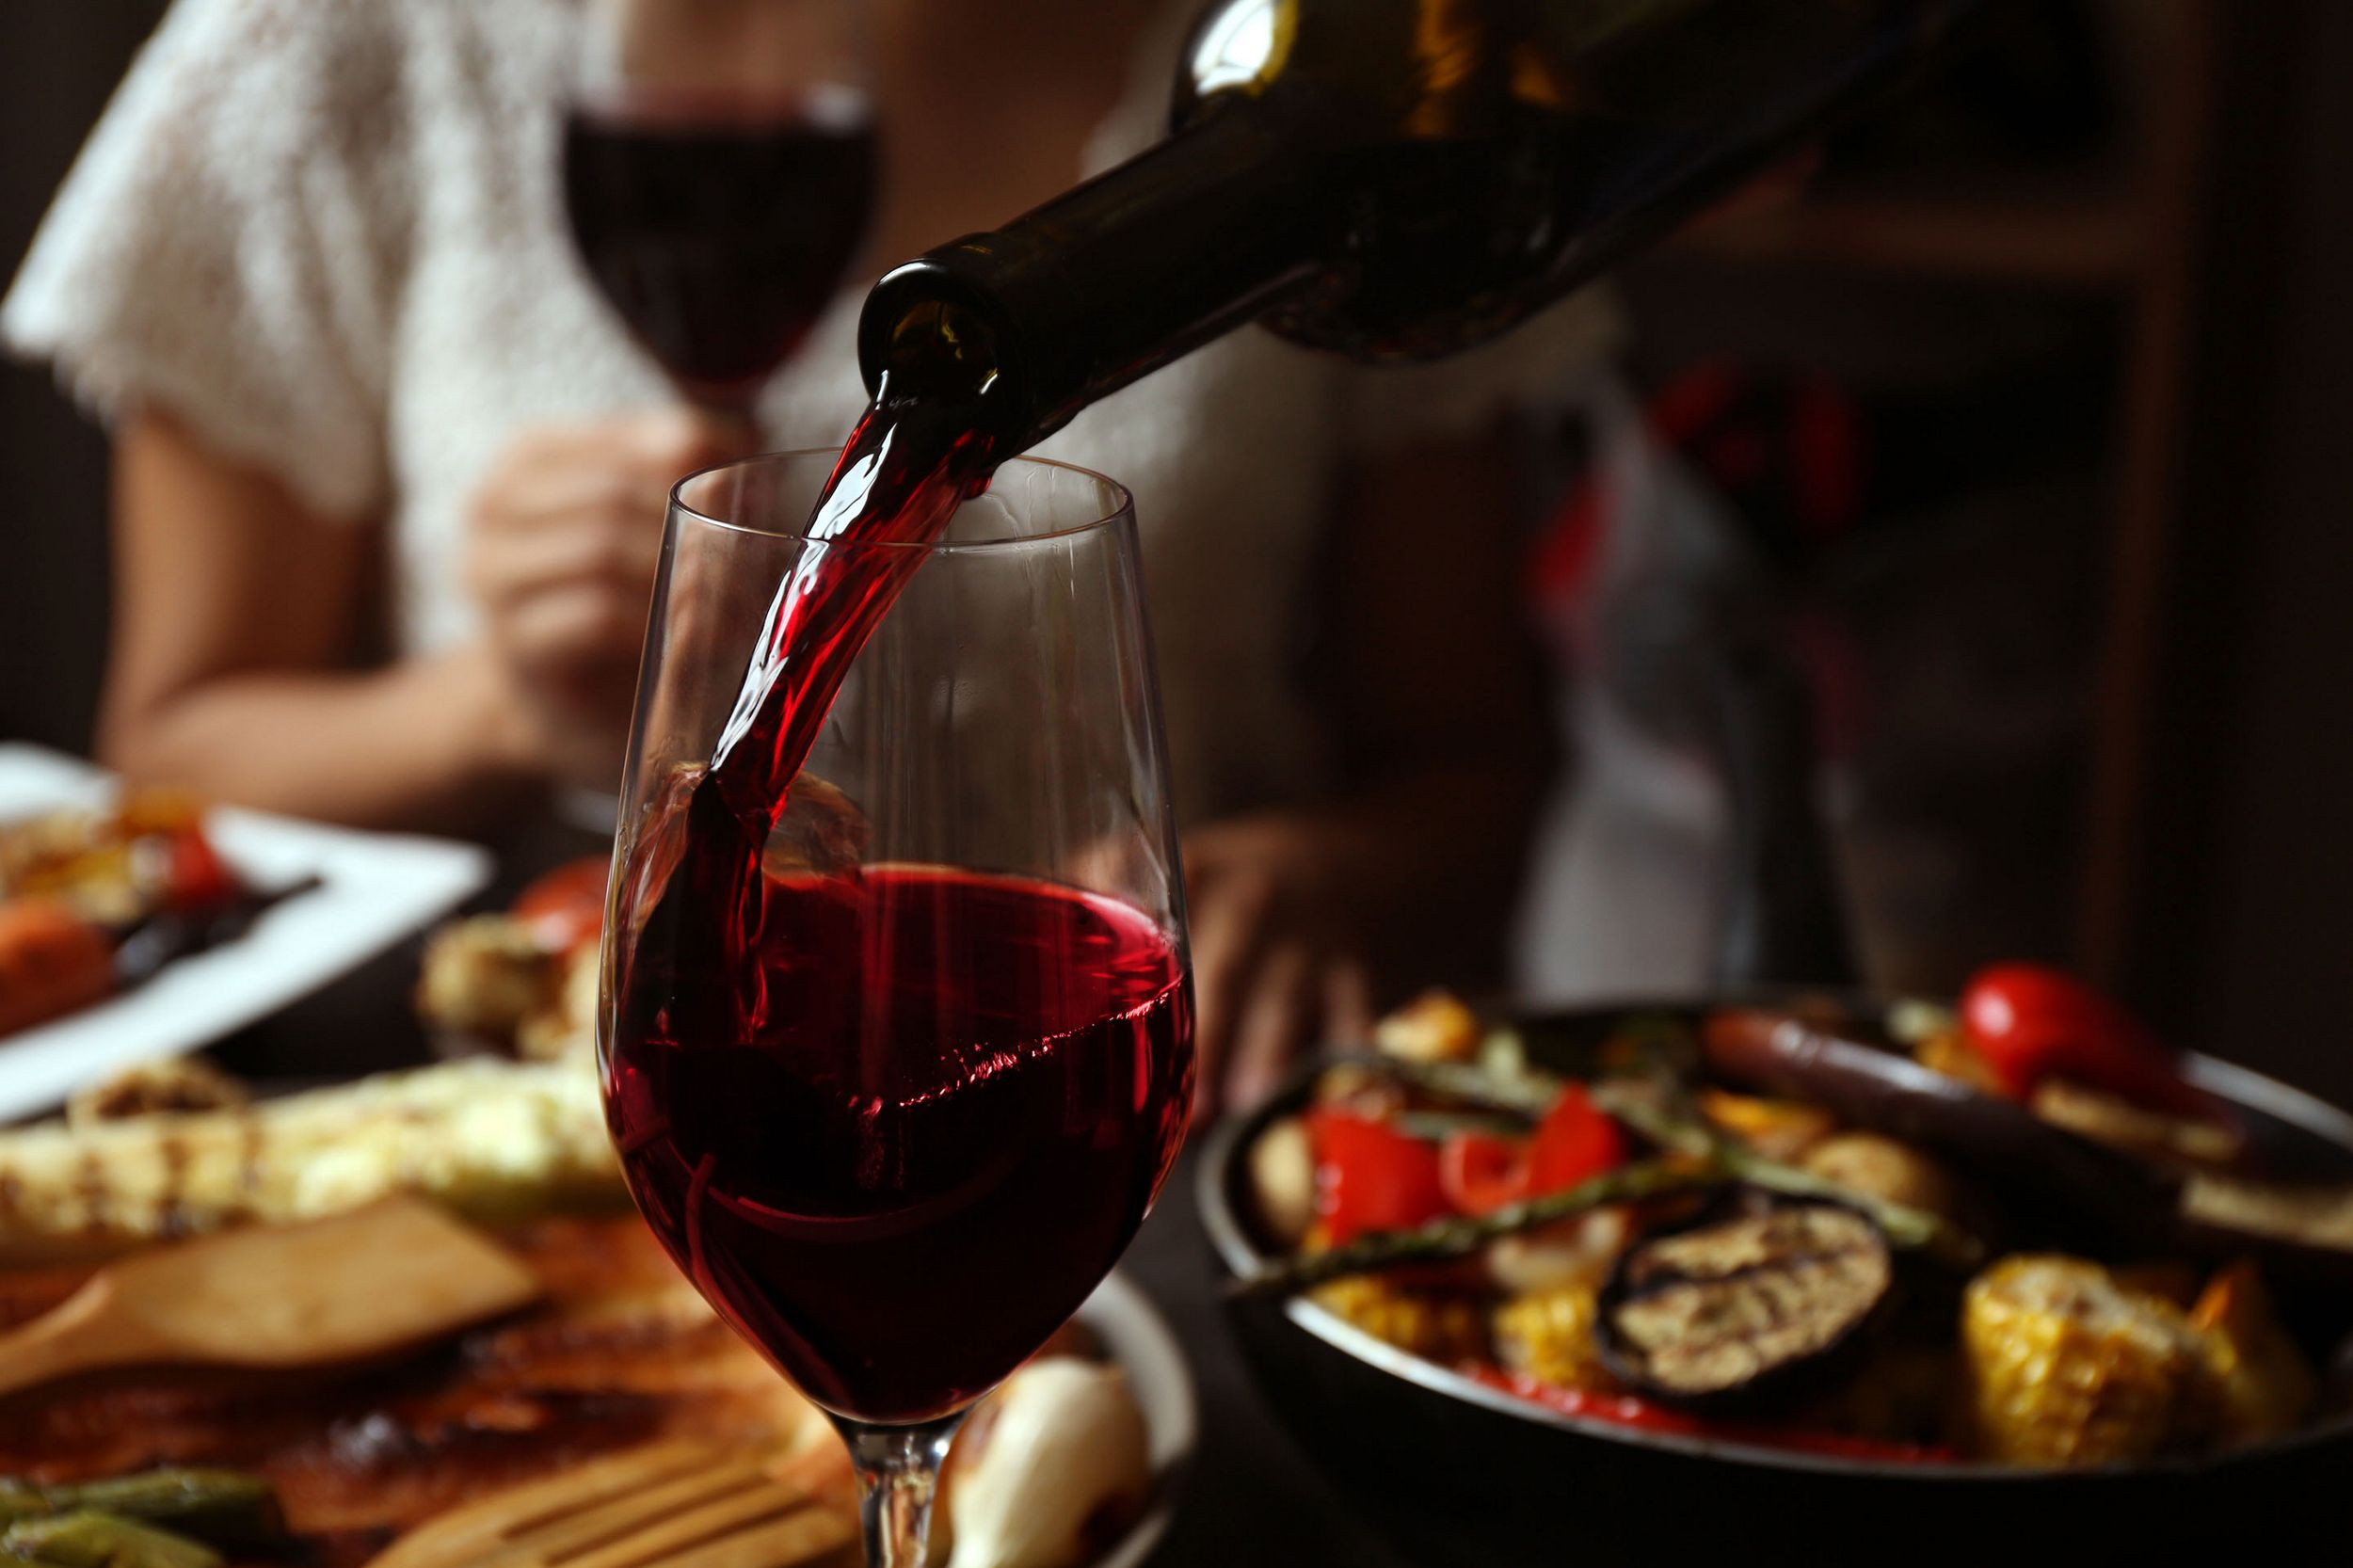 Red wine being poured into glass with food in the background